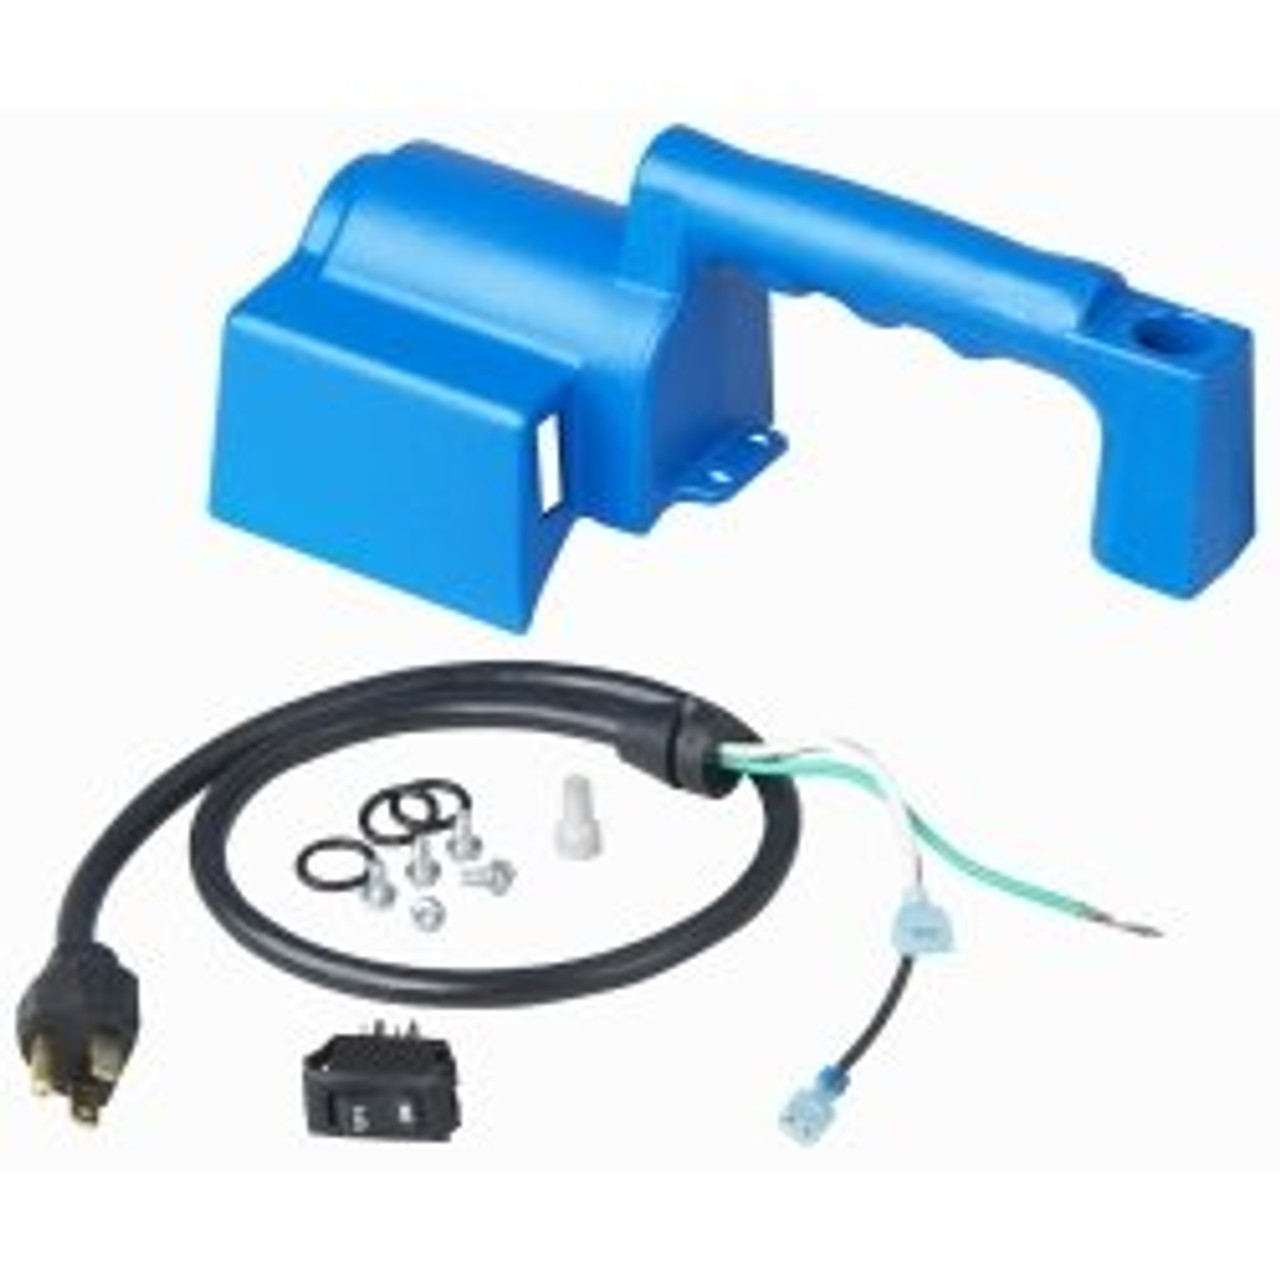 Robinair 15366 Power Cord Assembly For 154